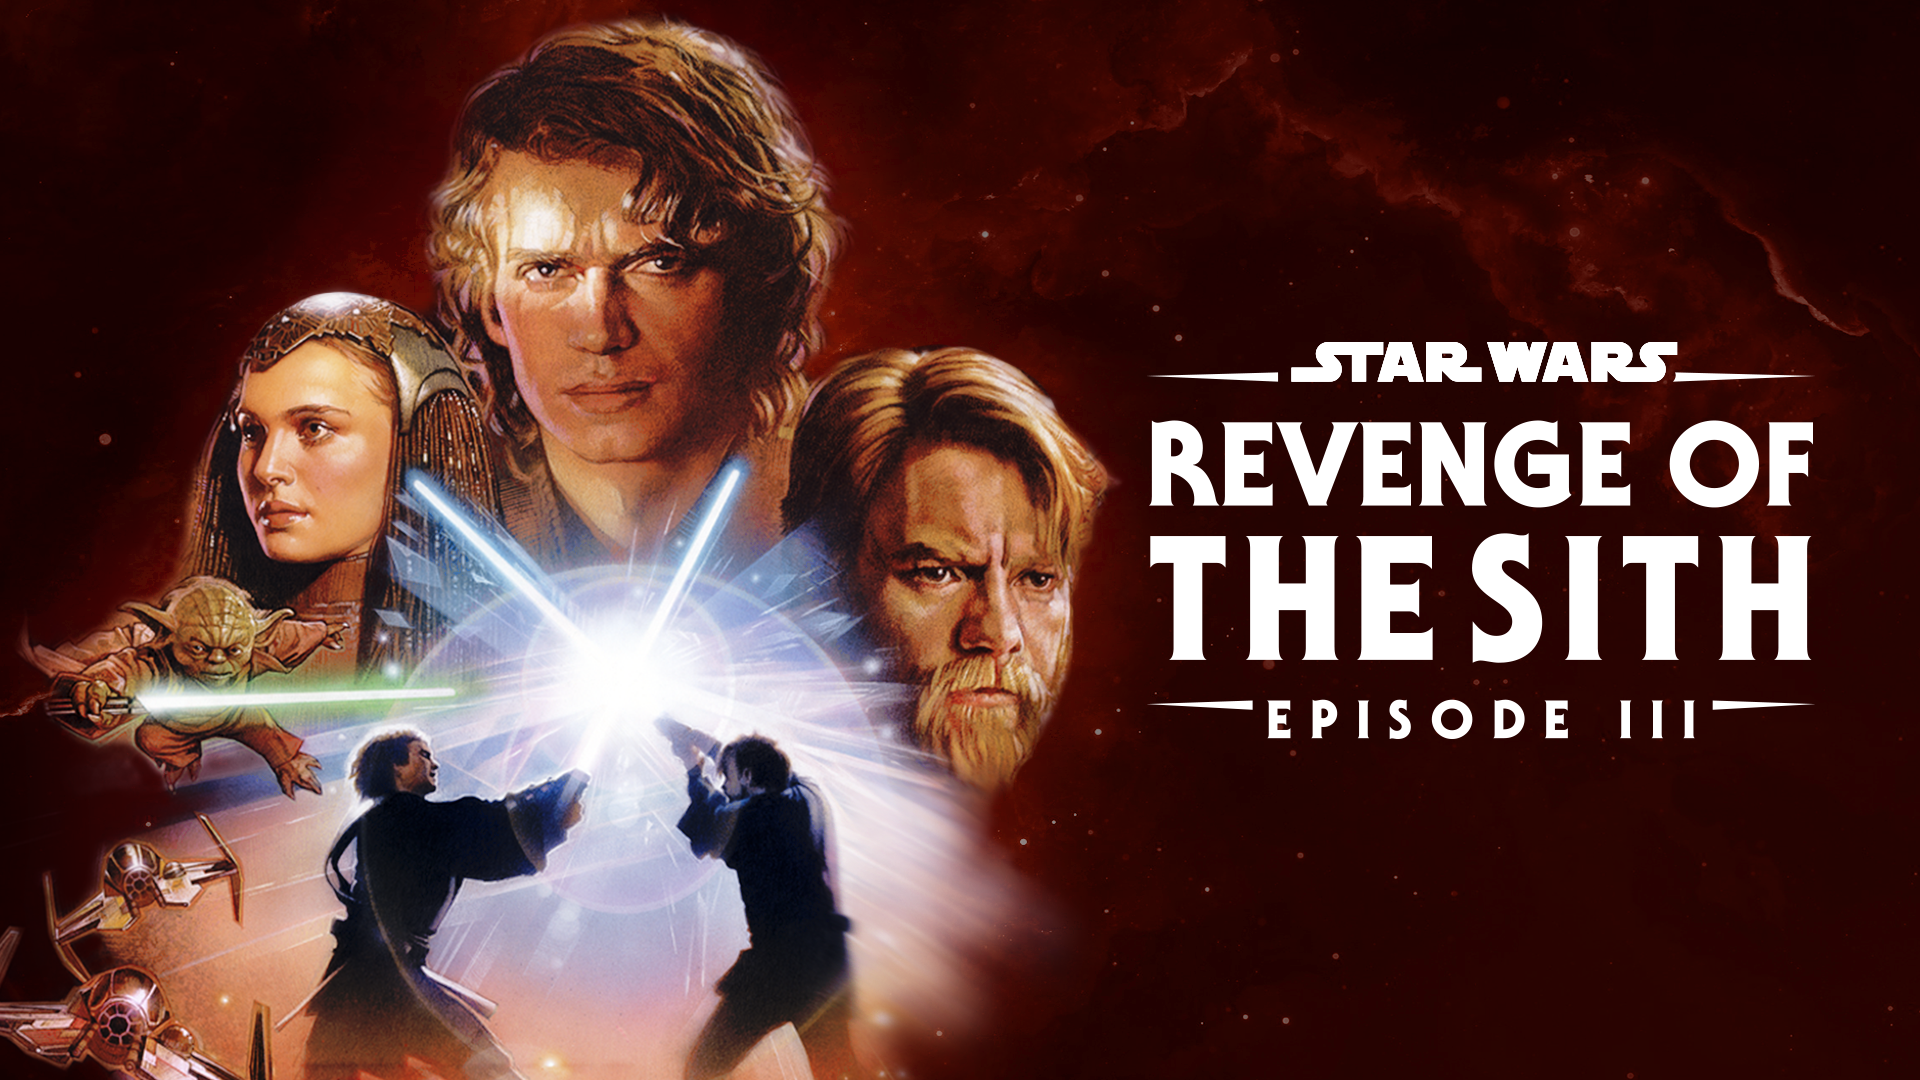 Watch Star Wars: Revenge of the Sith